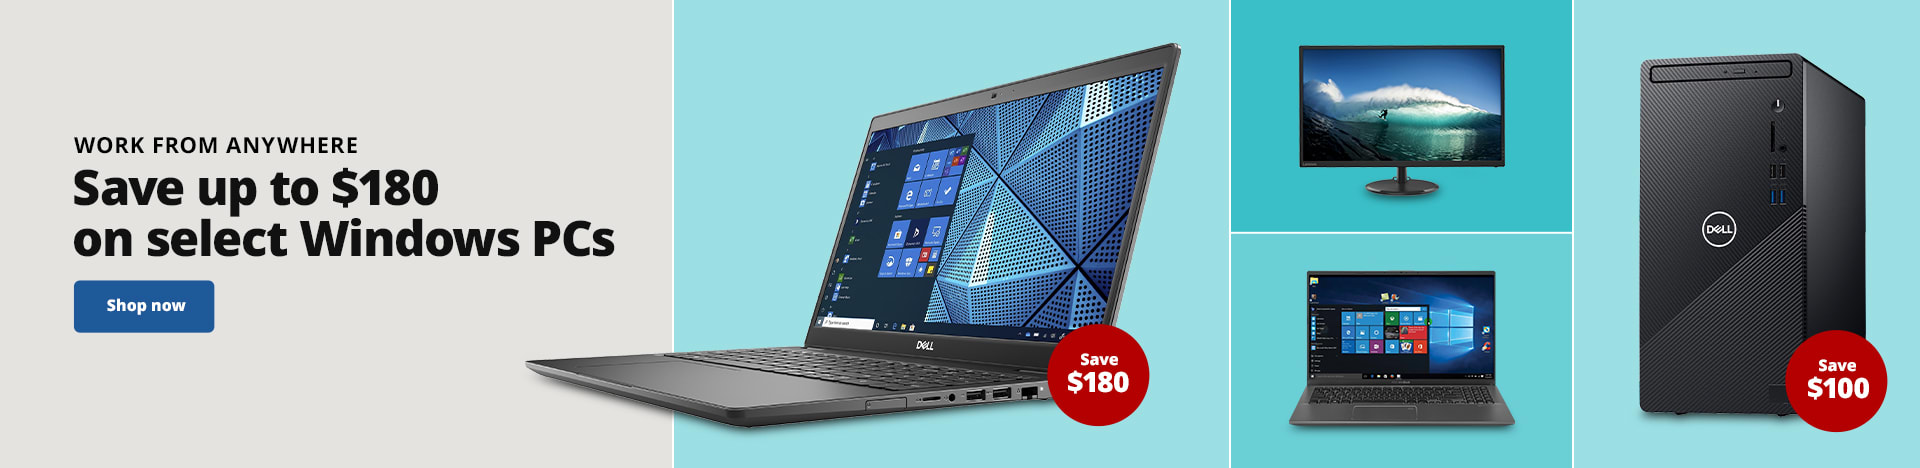 Work From Anywhere. Save up to $180 on select Windows PCs